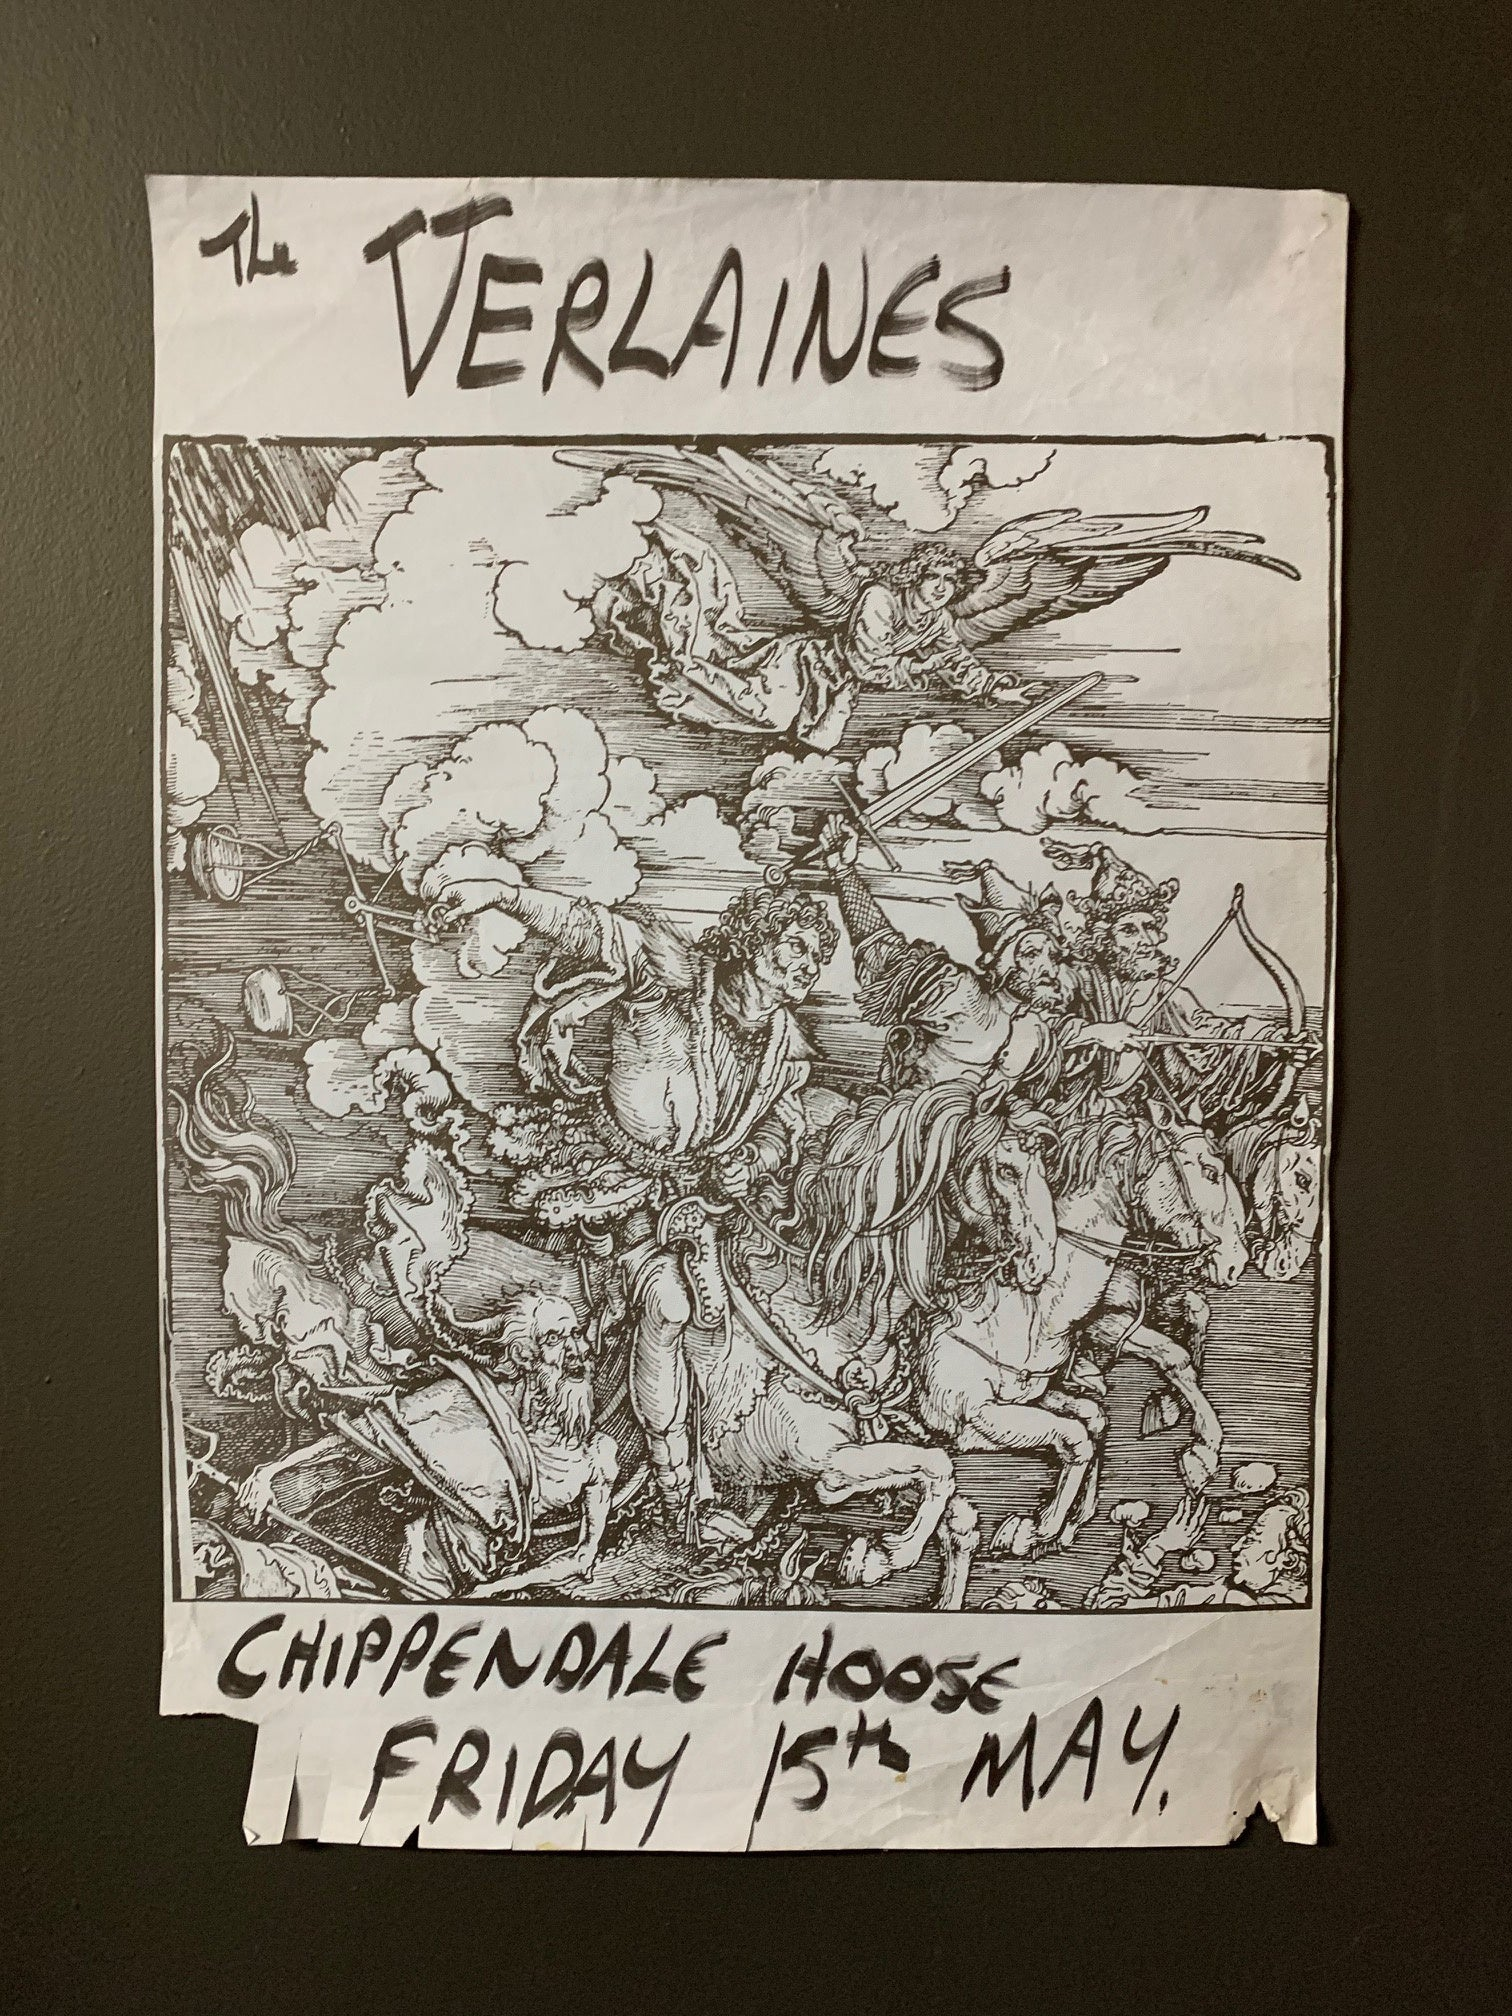 VERLAINES THE - ORIGINAL GIG POSTER